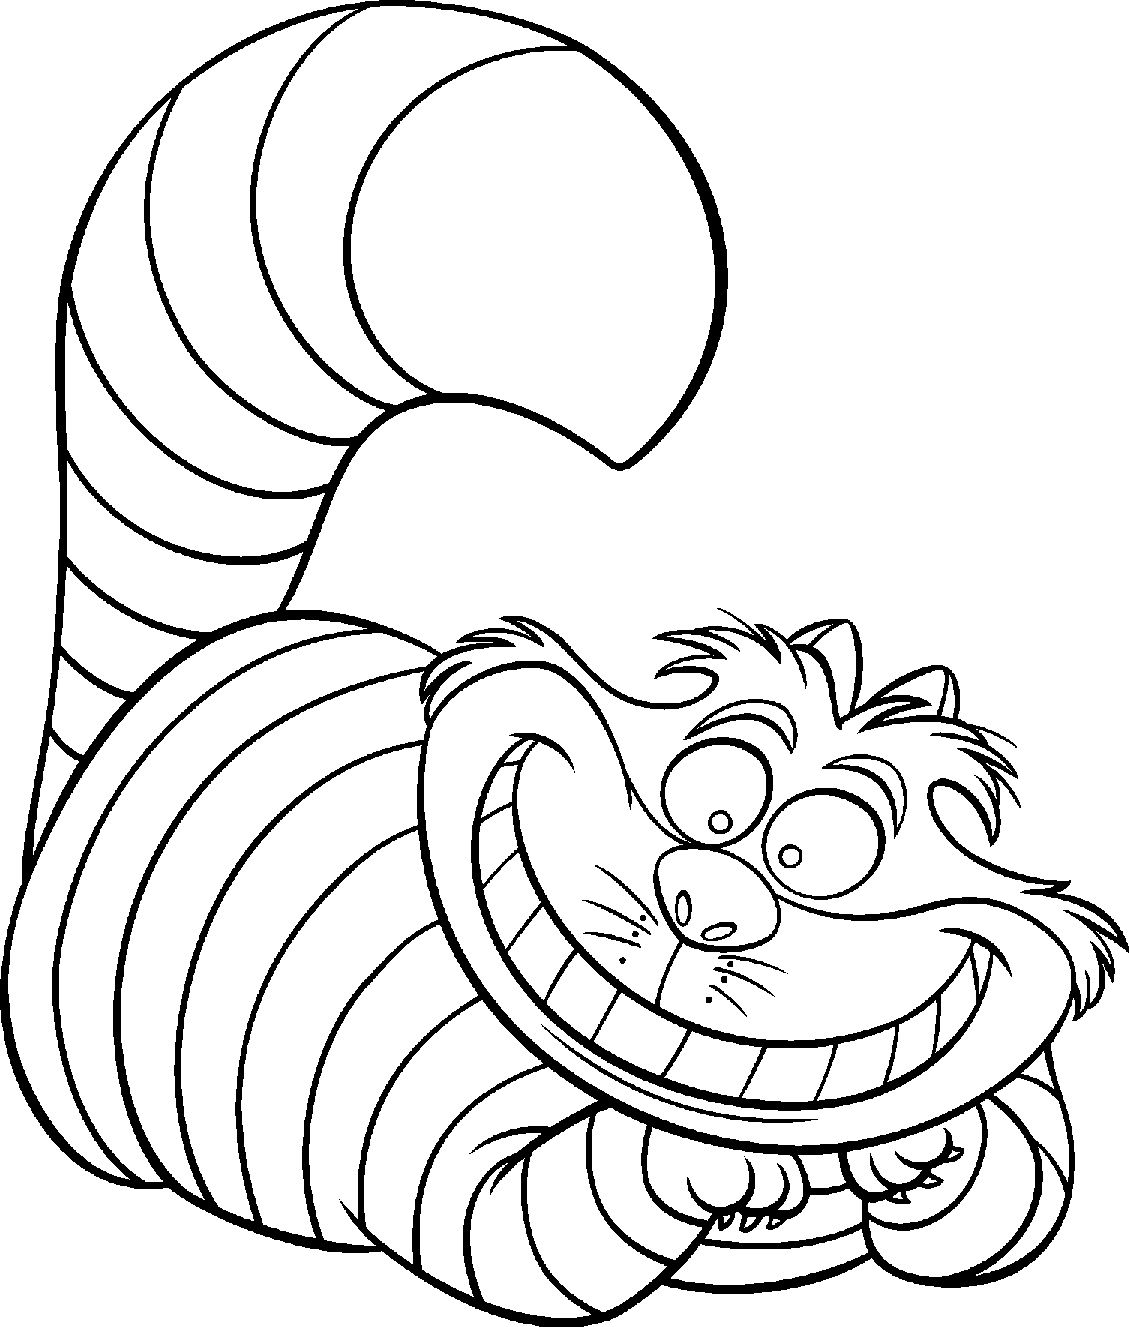 1129x1327 Alice In Wonderland Coloring Pages Free Printable Disney Alice